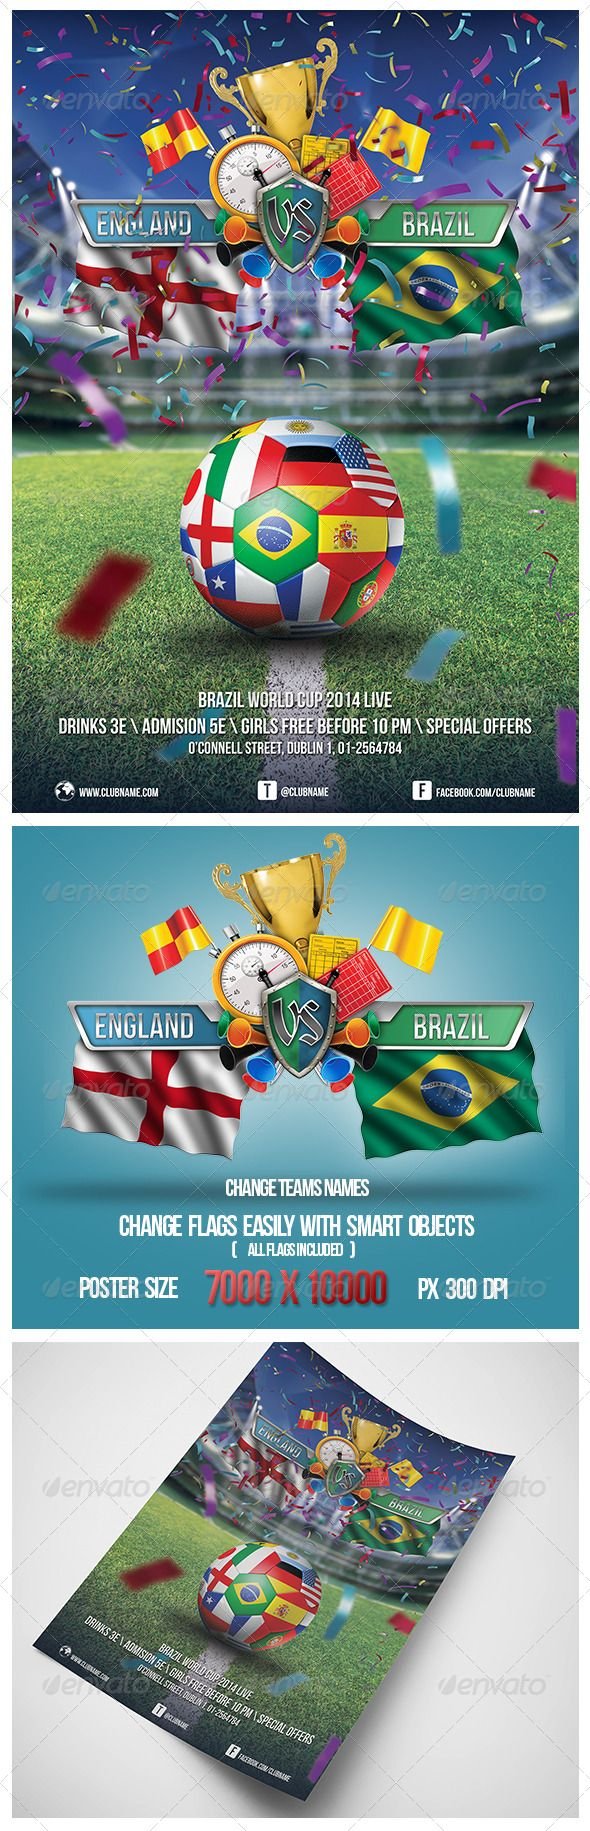 Brazil Football Cup 2014 Soccer Poster — Photoshop PSD #game #world cup • Available here → https://graphicriver.net/item/brazil-football-cup-2014-soccer-poster/7864109?ref=pxcr